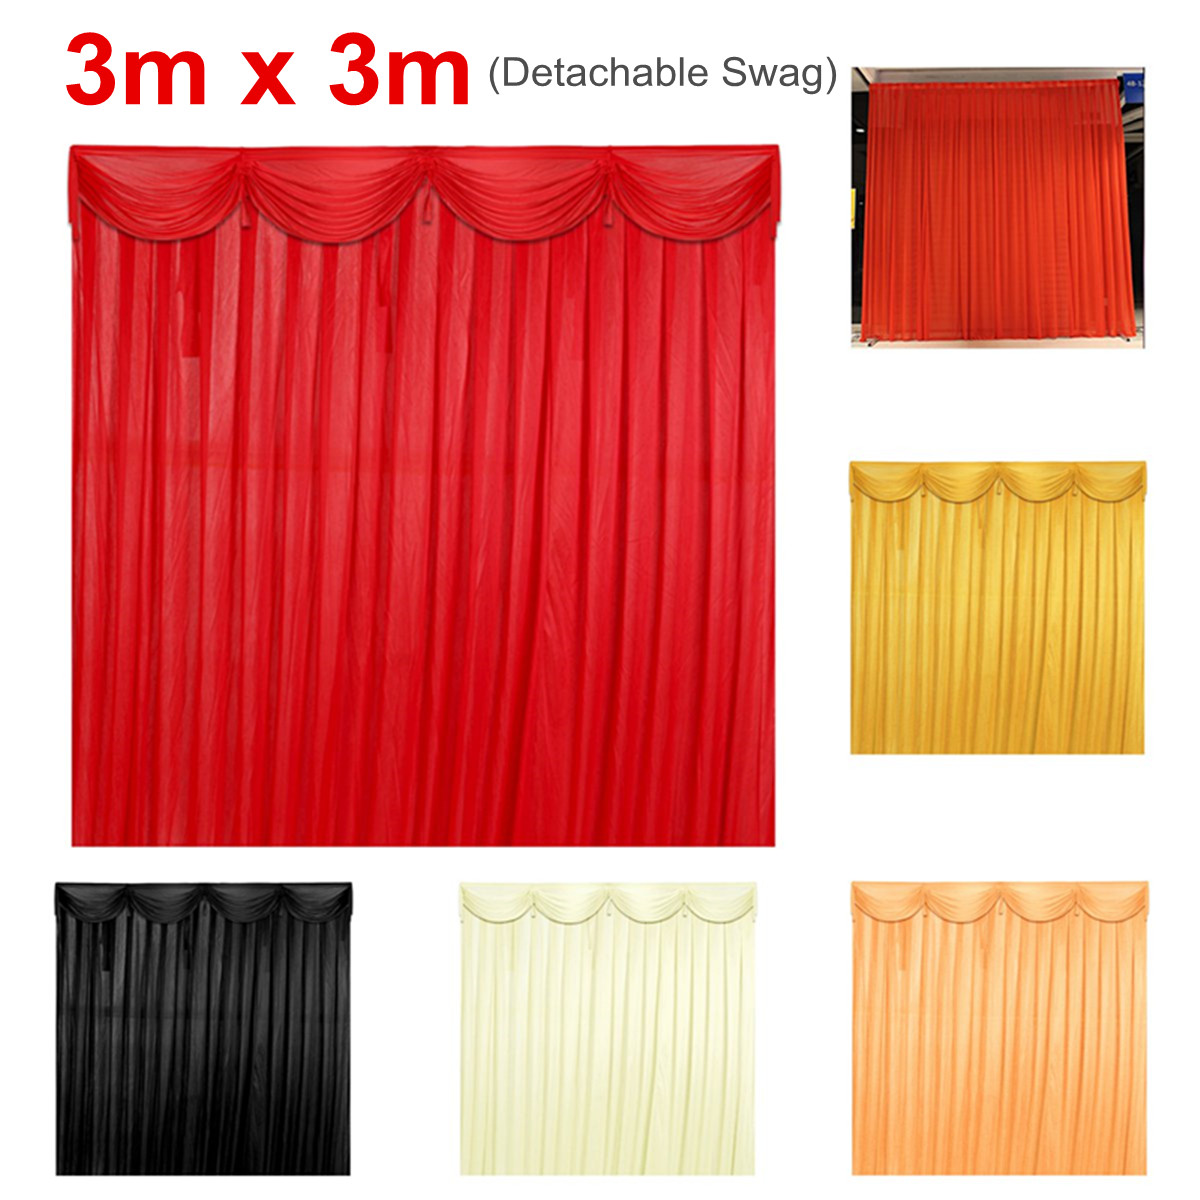 Silk Satin Wedding Stage Backdrop Curtain Drape Party Decor Detachable Swag Birthday Party Wedding Decoration 5 Colors 3x3 MSilk Satin Wedding Stage Backdrop Curtain Drape Party Decor Detachable Swag Birthday Party Wedding Decoration 5 Colors 3x3 M